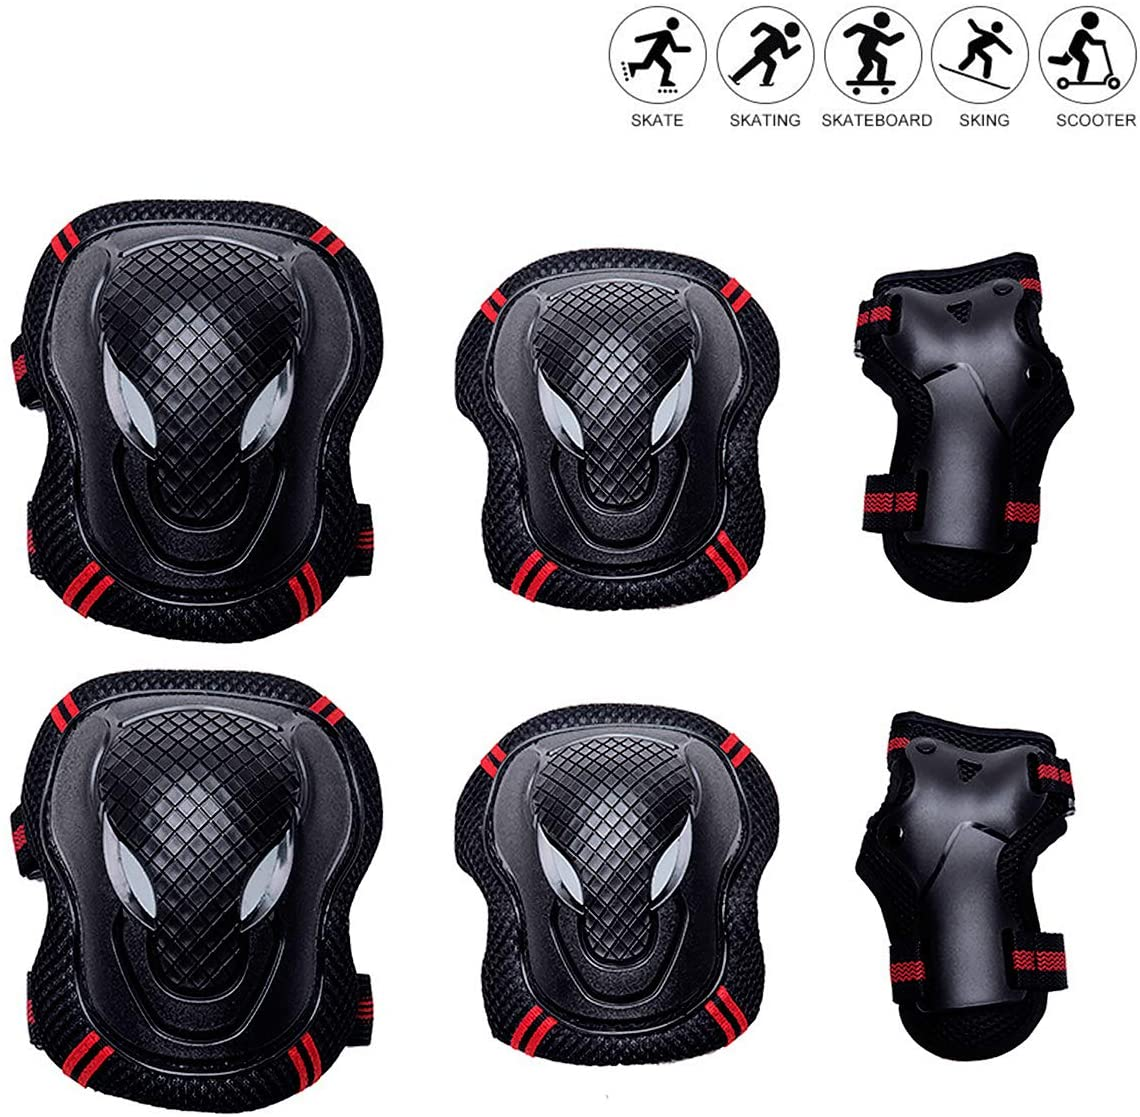 Kids Elbow and Knee Pads Skateboarding Adults Protective Gear and Wrist Guards 6 in 1, for Kids/Youth, Uses: Roller Skating, Cycling, Balance Biking, Scooter